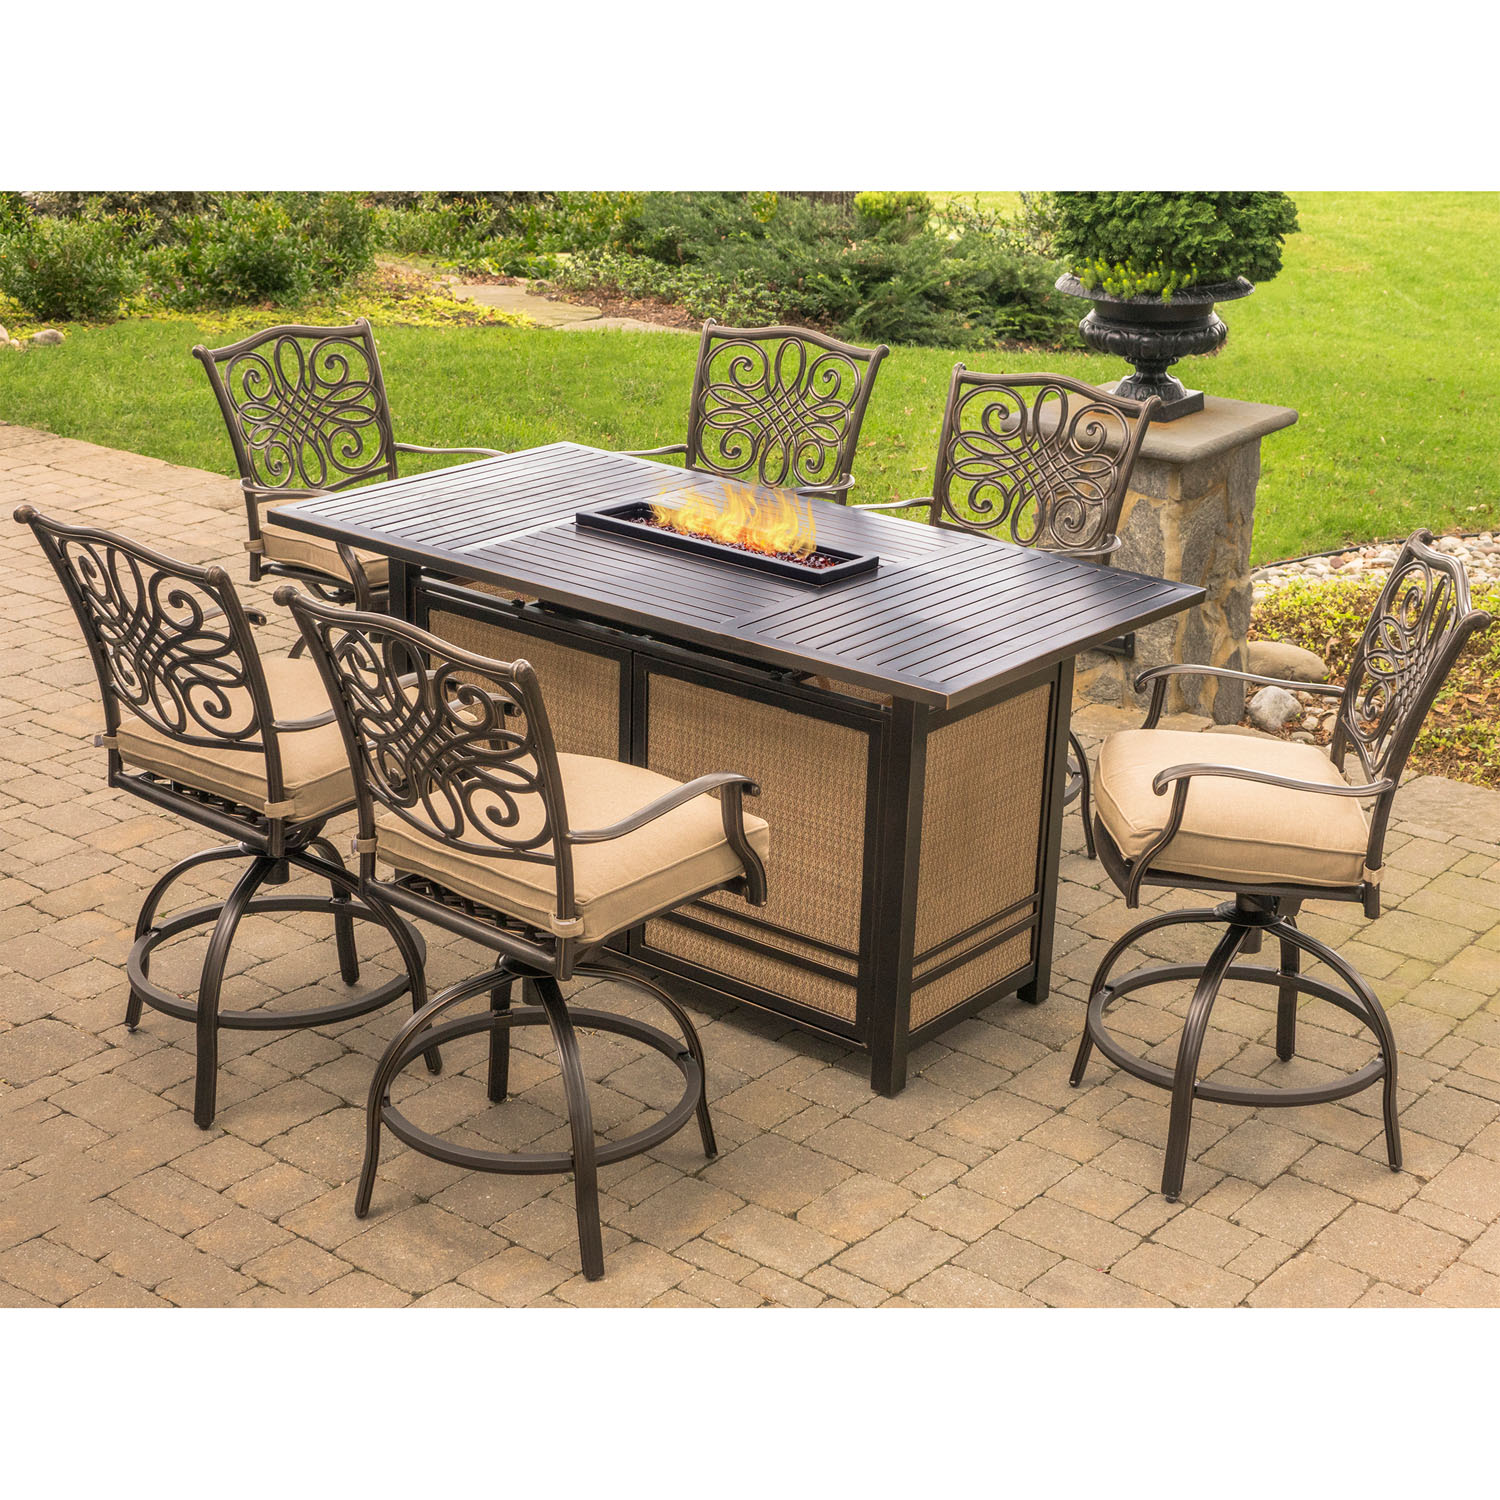 Hanover Traditions 7 Piece High Dining Set In Tan With